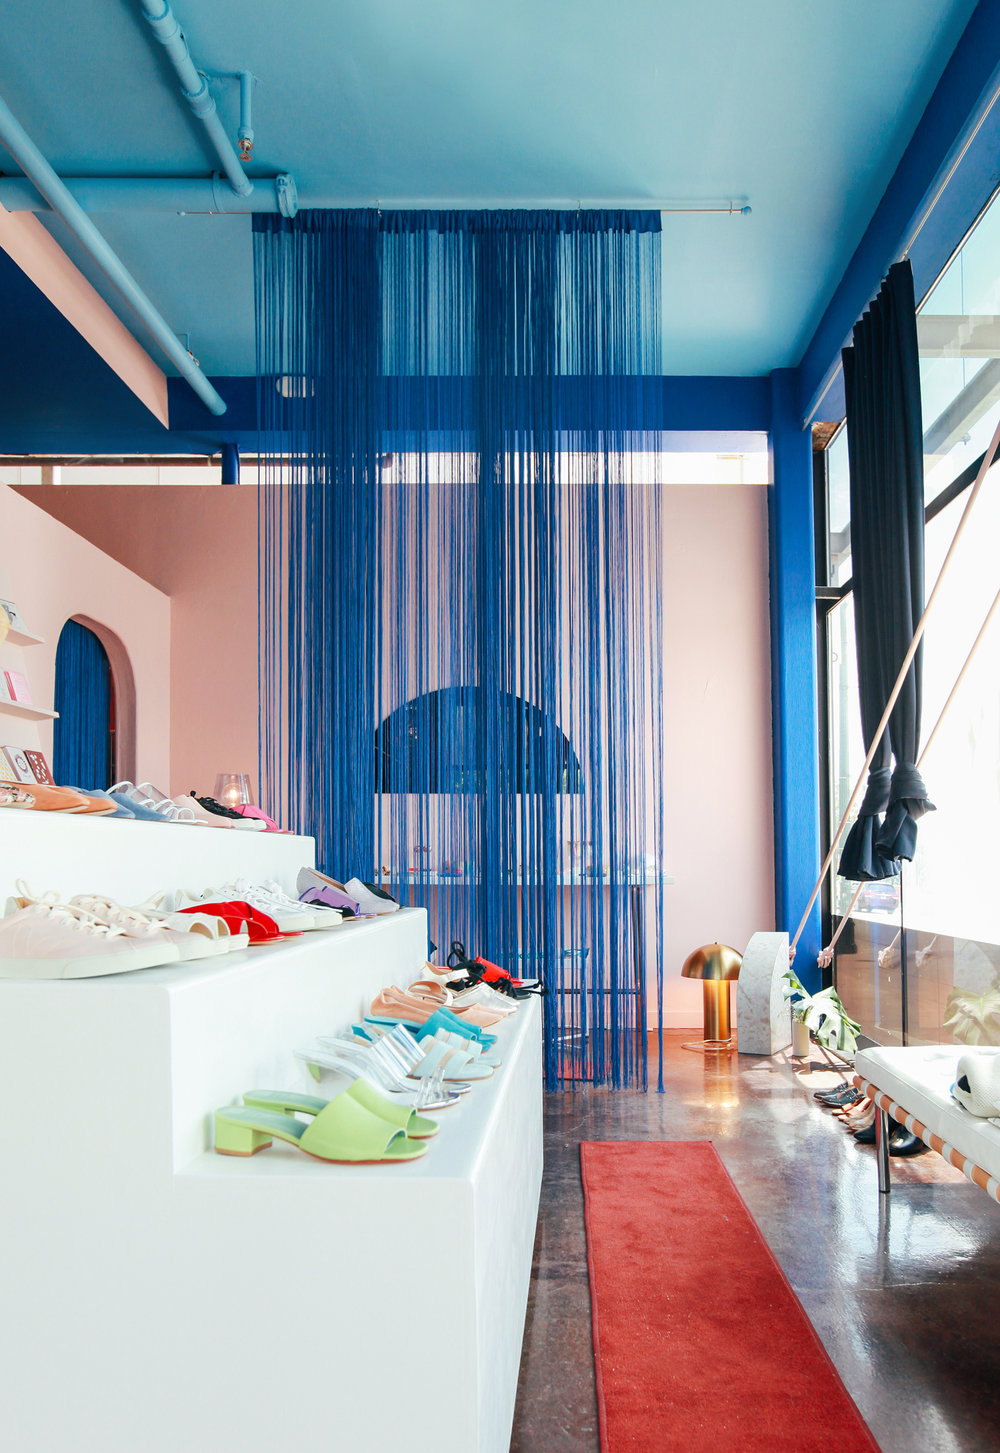 How to make your home look like a boutique camille styles - Interior design jobs in austin tx ...